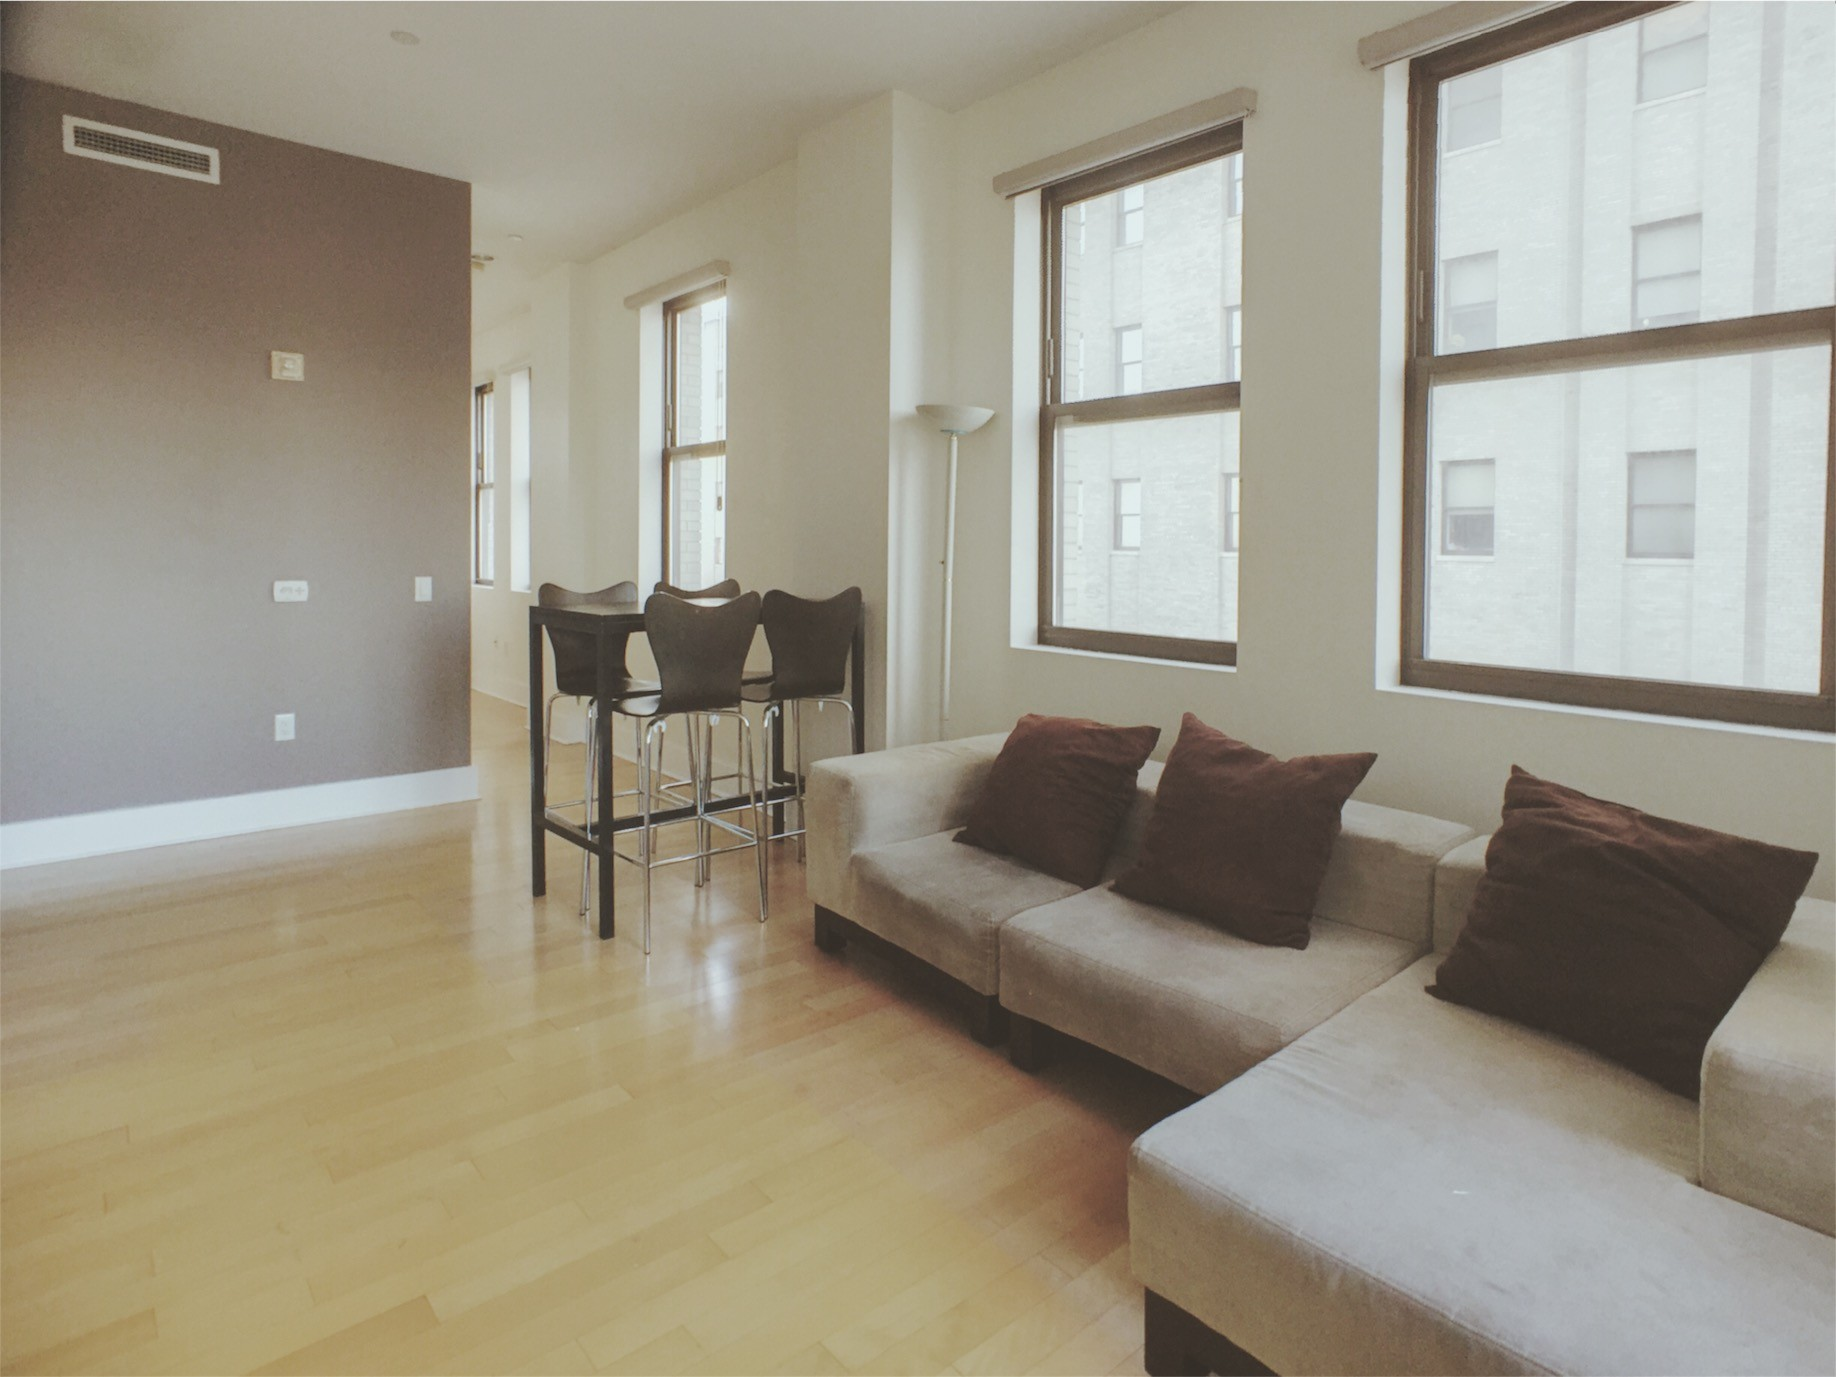 beacon way jersey city nj 07304 1 bedroom apartment for rent for